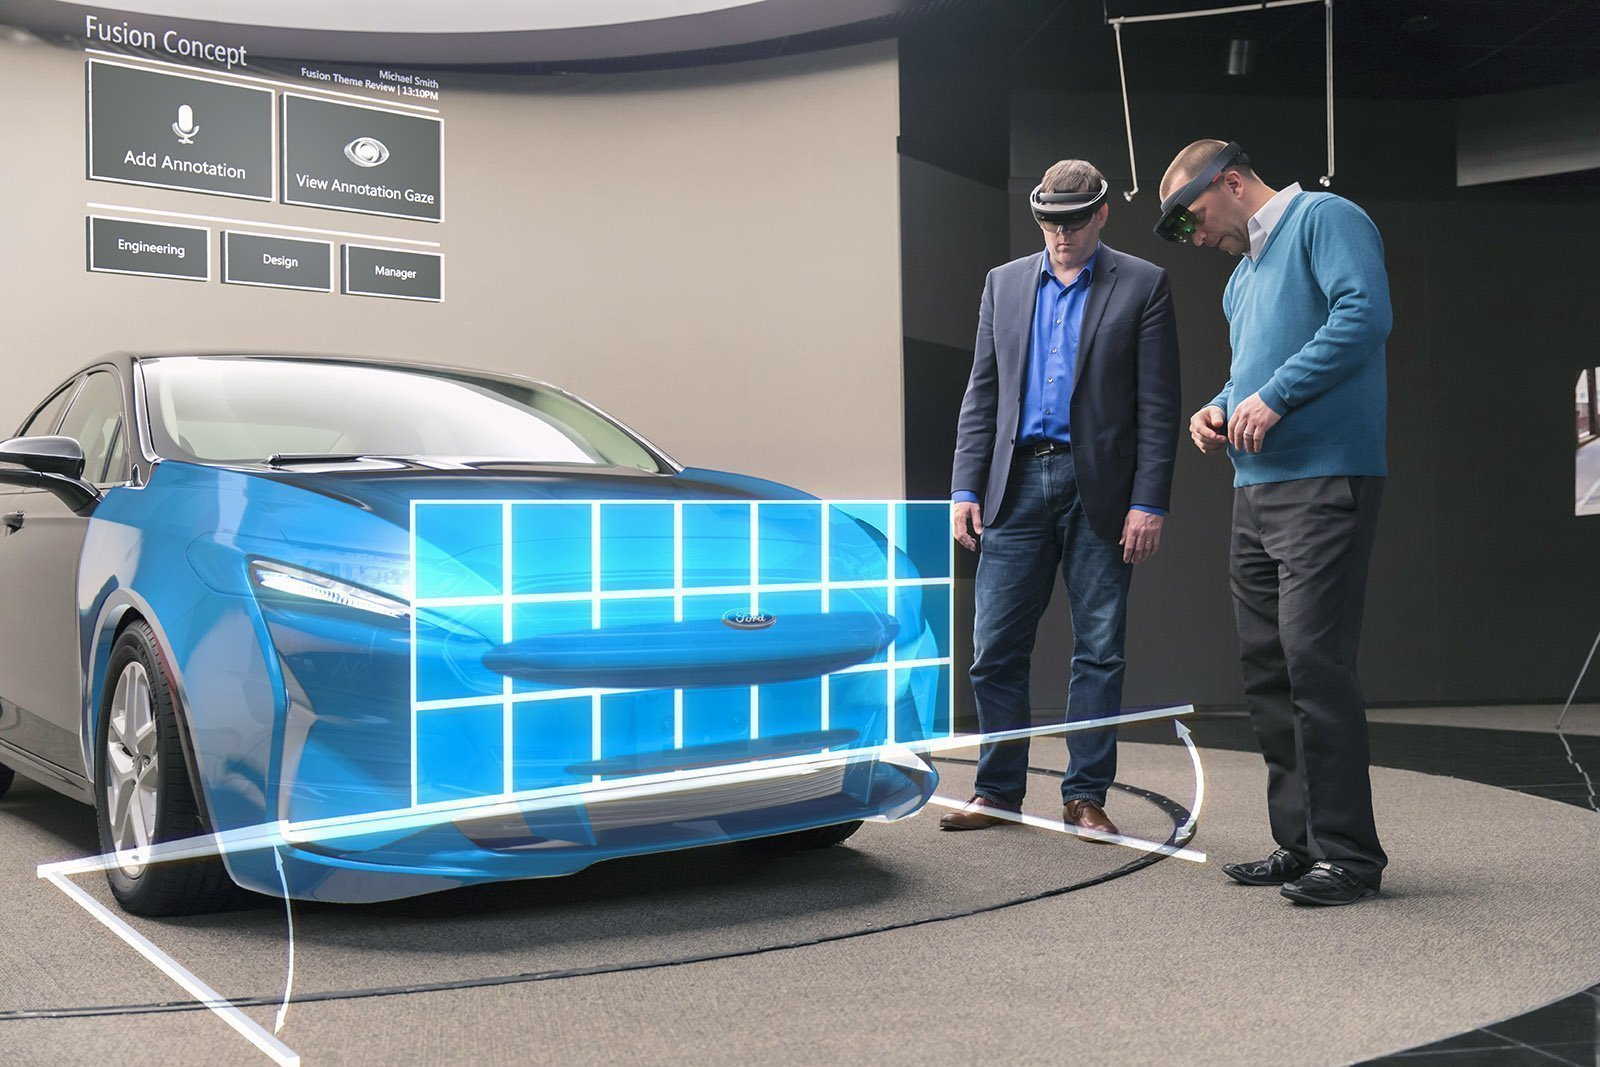 VR Expert Hololens ford check